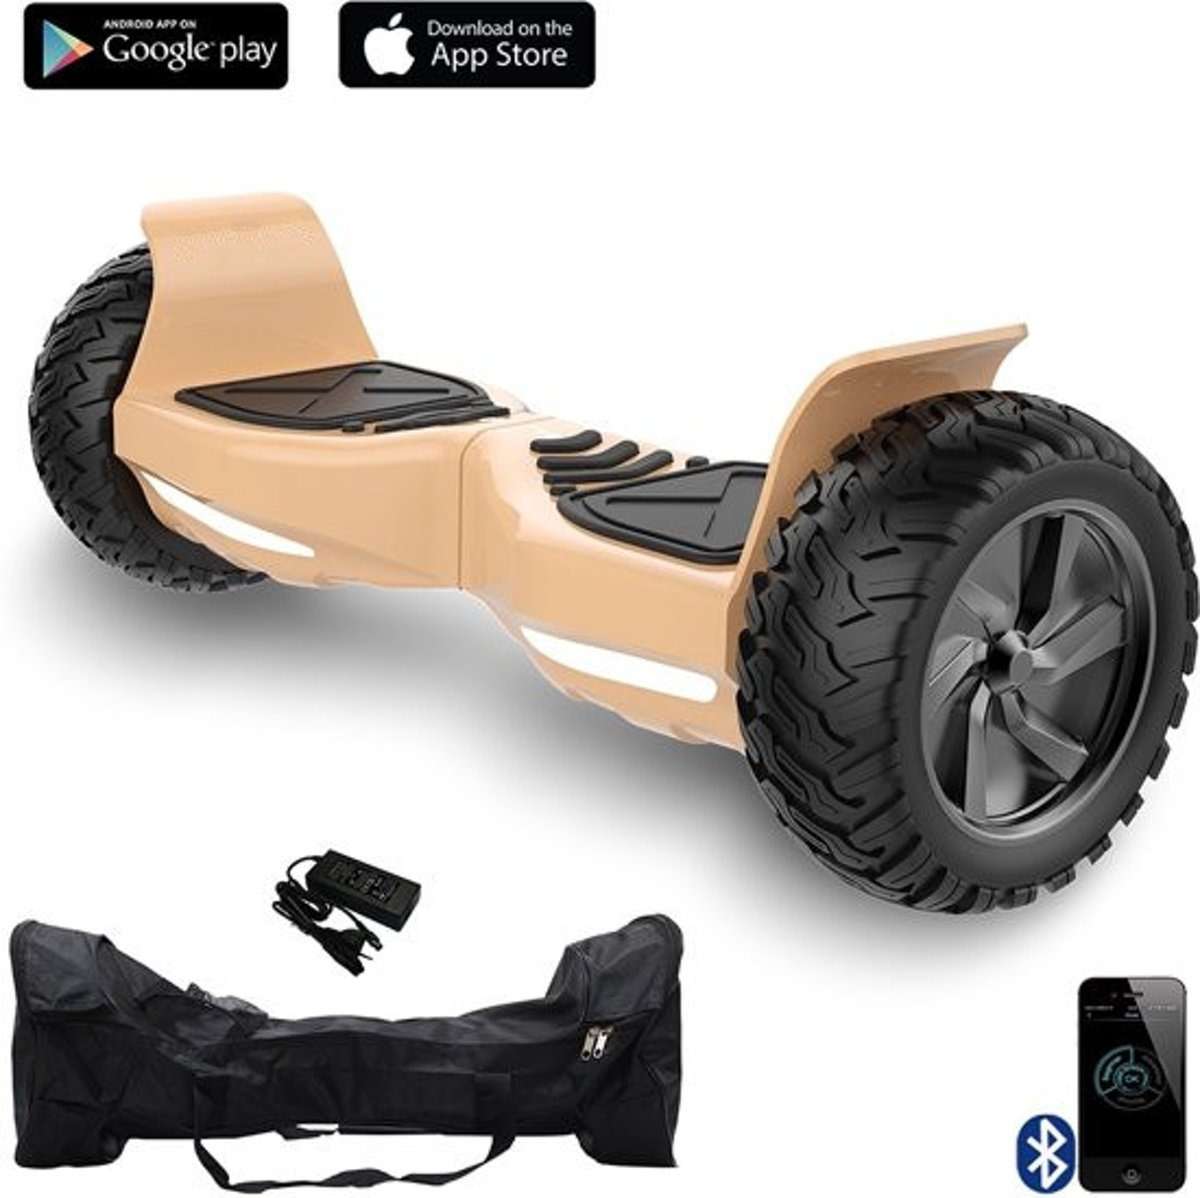 HOVERBOARD HUMMER GOUD ALLE TERREINEN 8.5 INCHES Off Road App Functie met V5 Bluetooth speaker&TAOTAO 2018 SOFTWARE